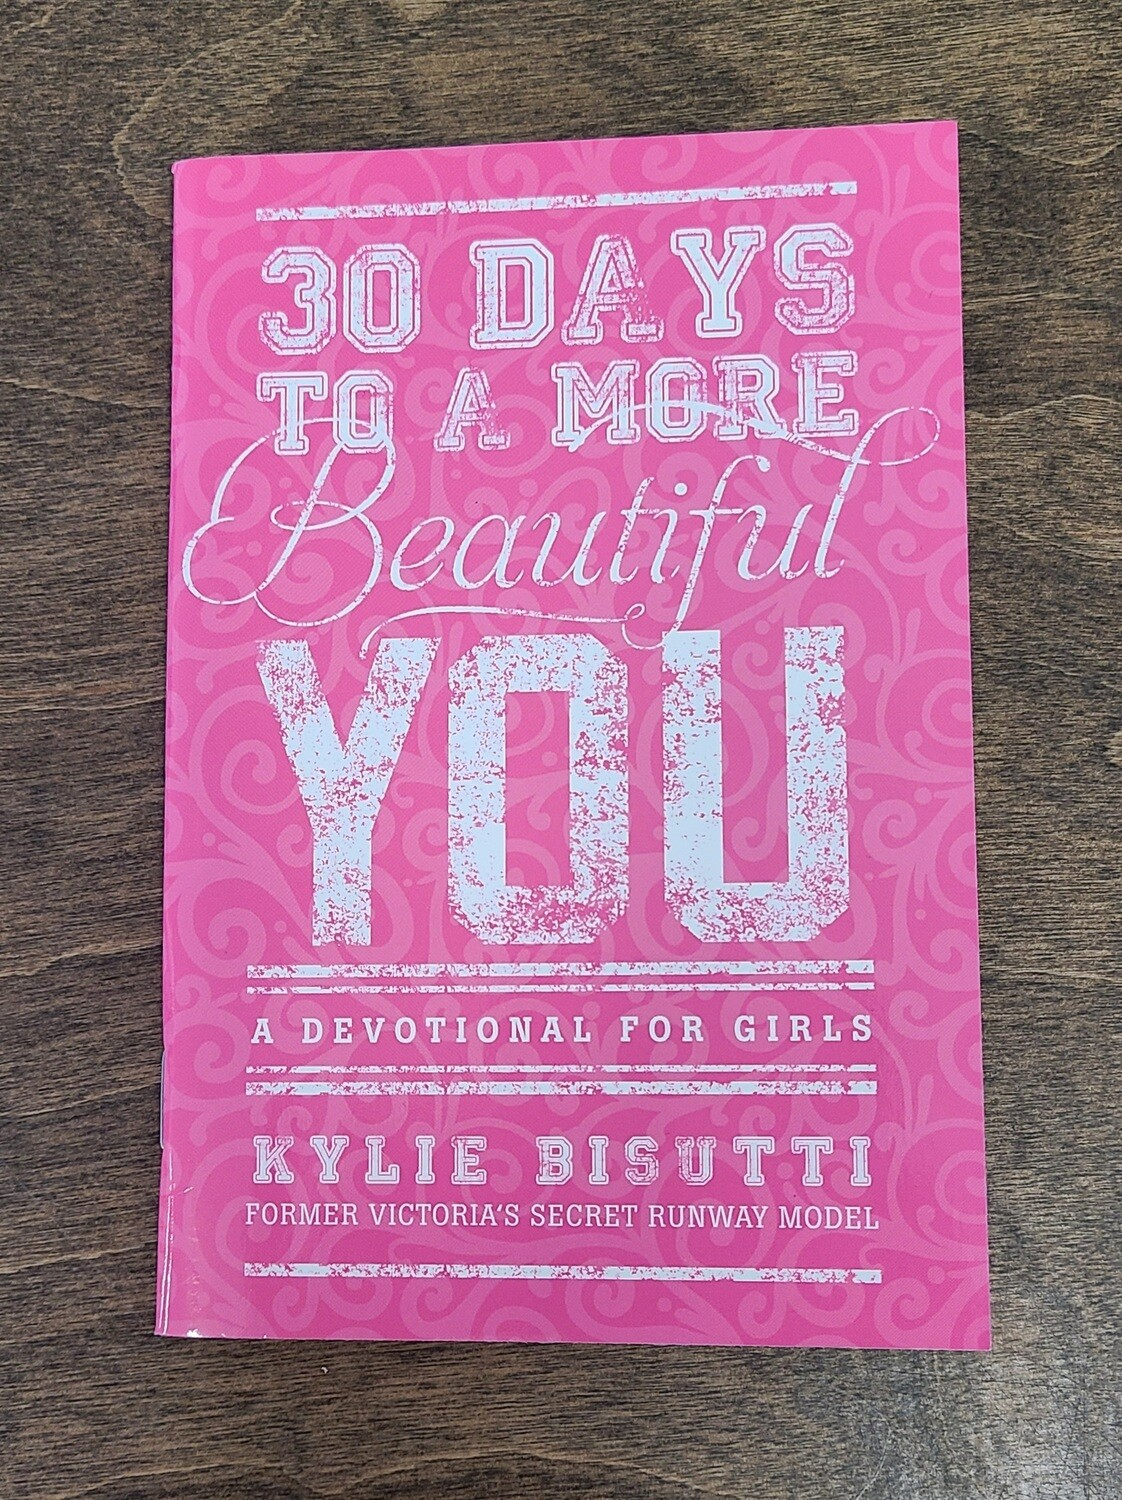 30 Days to A More Beautiful You: A Devotional For Girls by Kylie Busutti